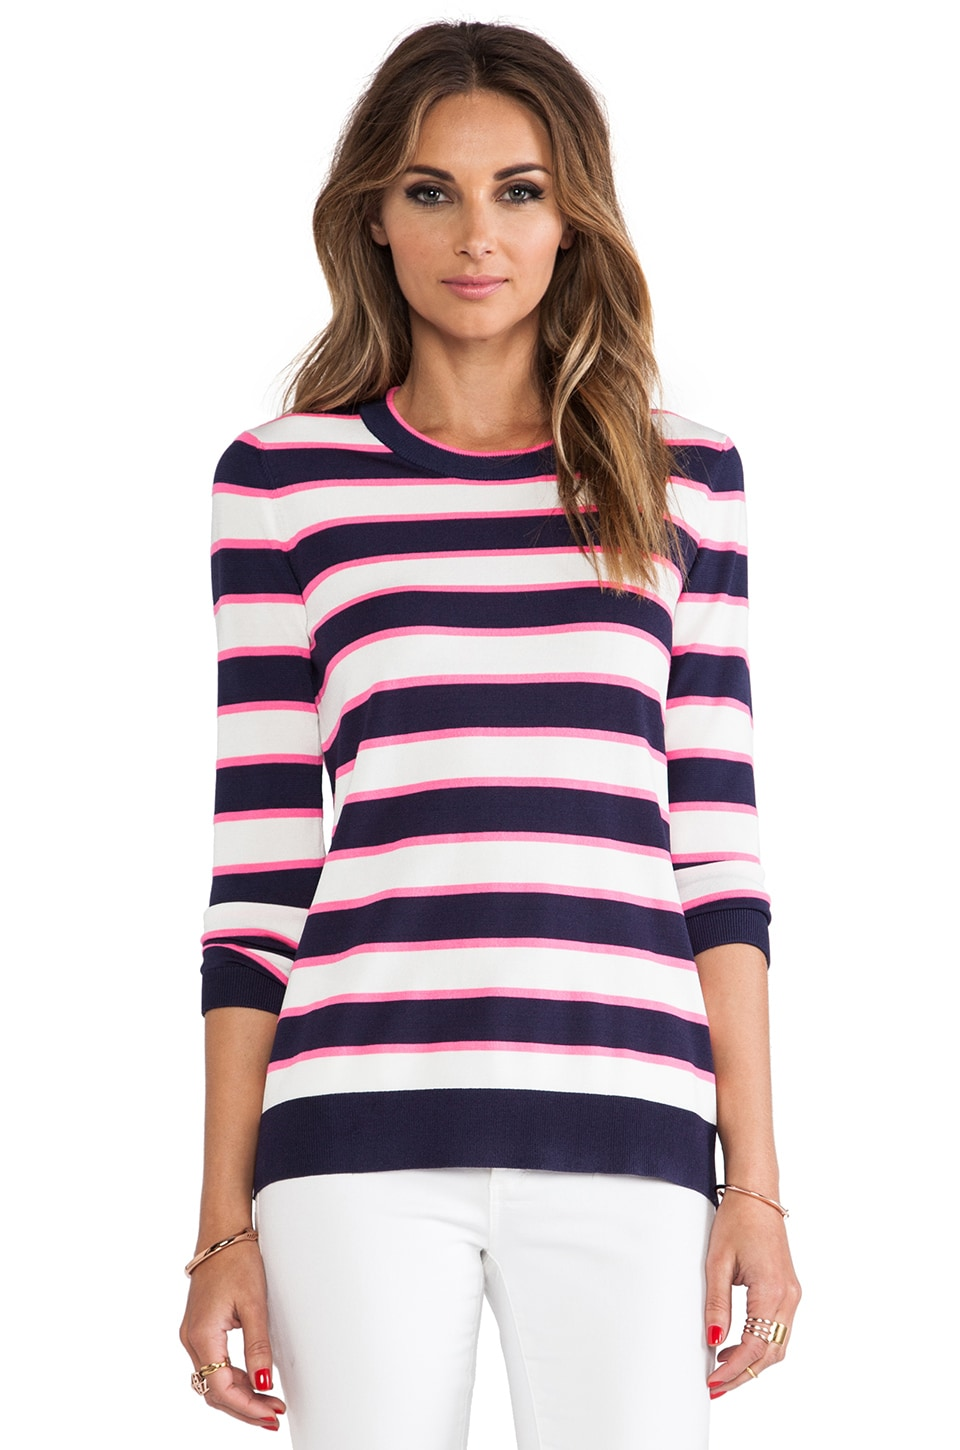 Shoshanna Striped Kim Sweater in Stripe Multi